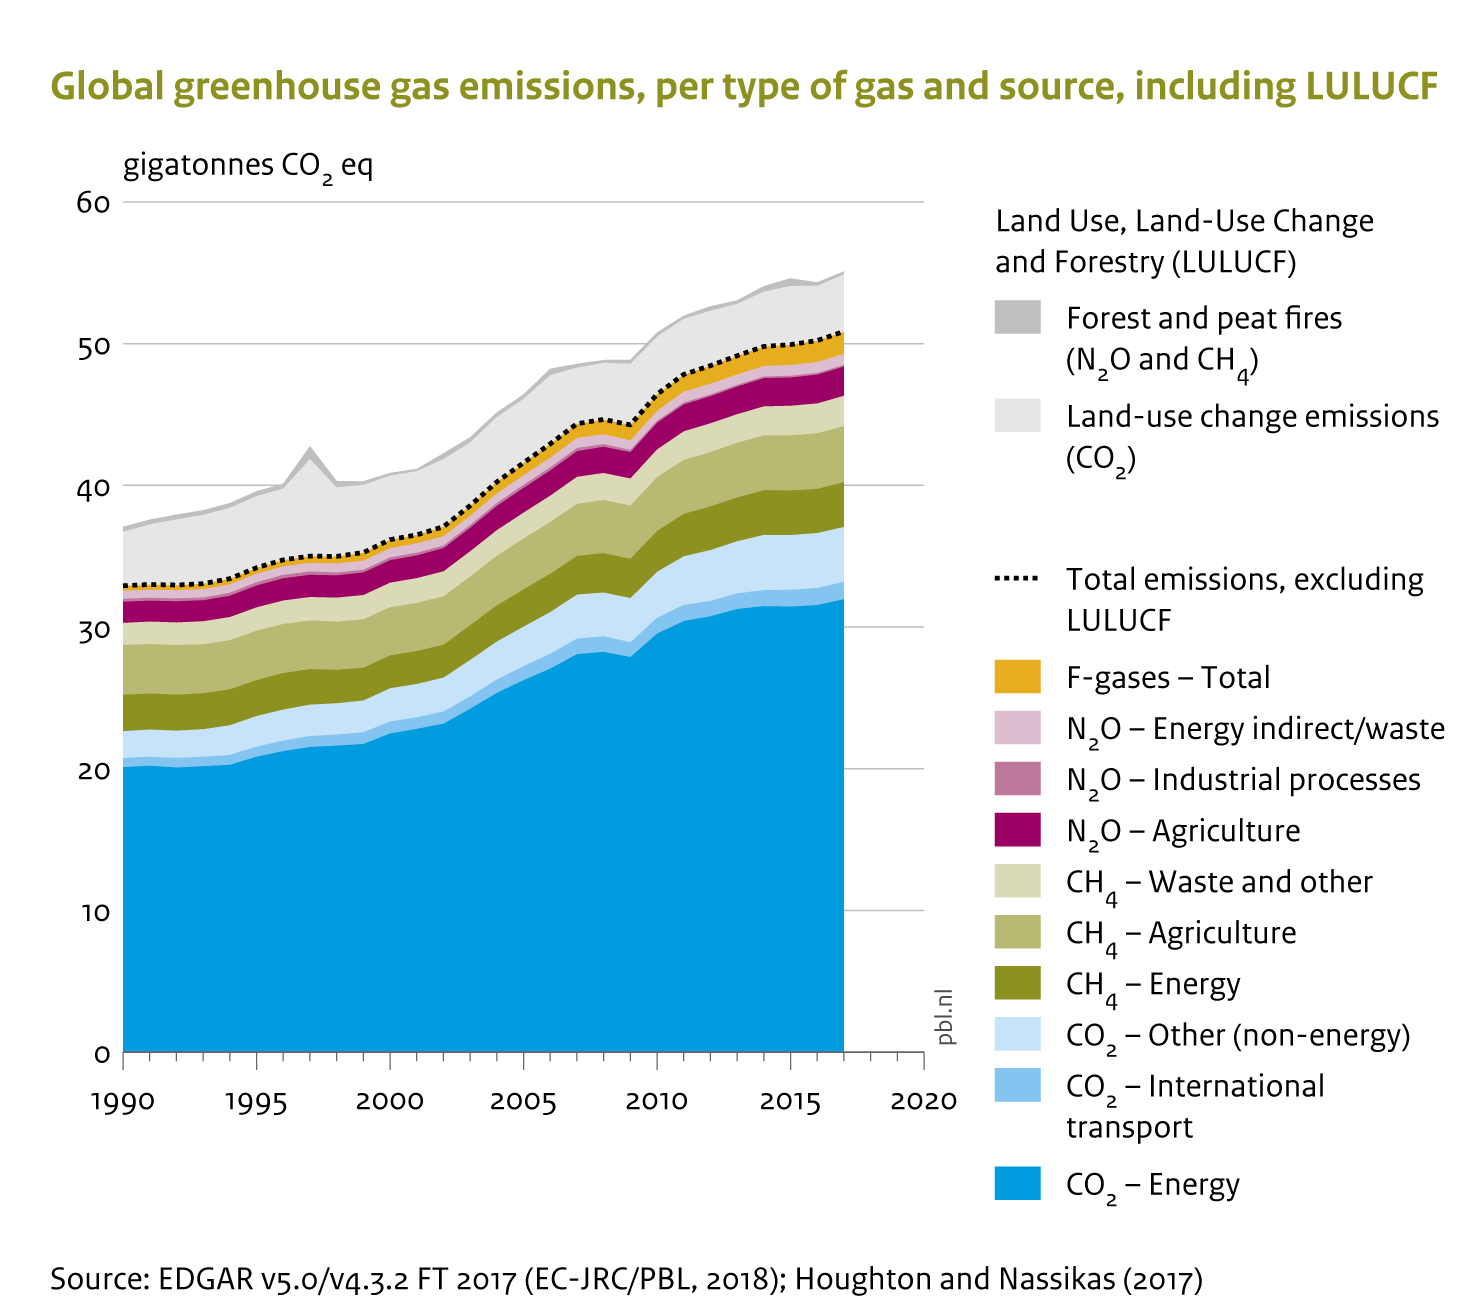 The global greenhouse gas emissions, per type of gas and source, including LULUCF